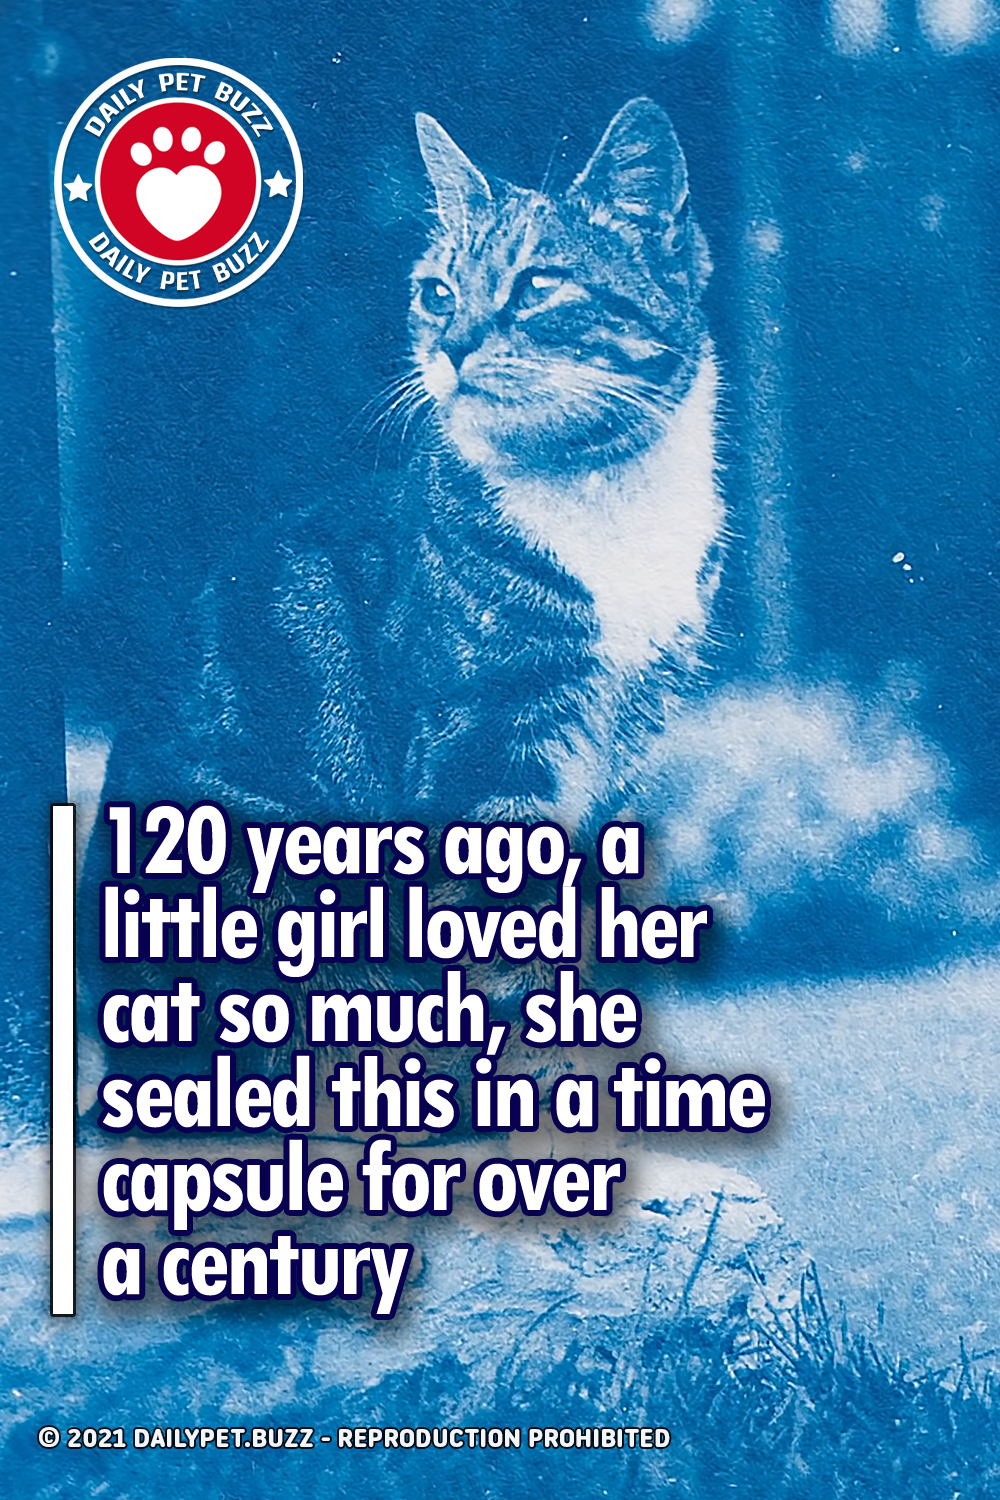 120 years ago, a little girl loved her cat so much, she sealed this in a time capsule for over a century